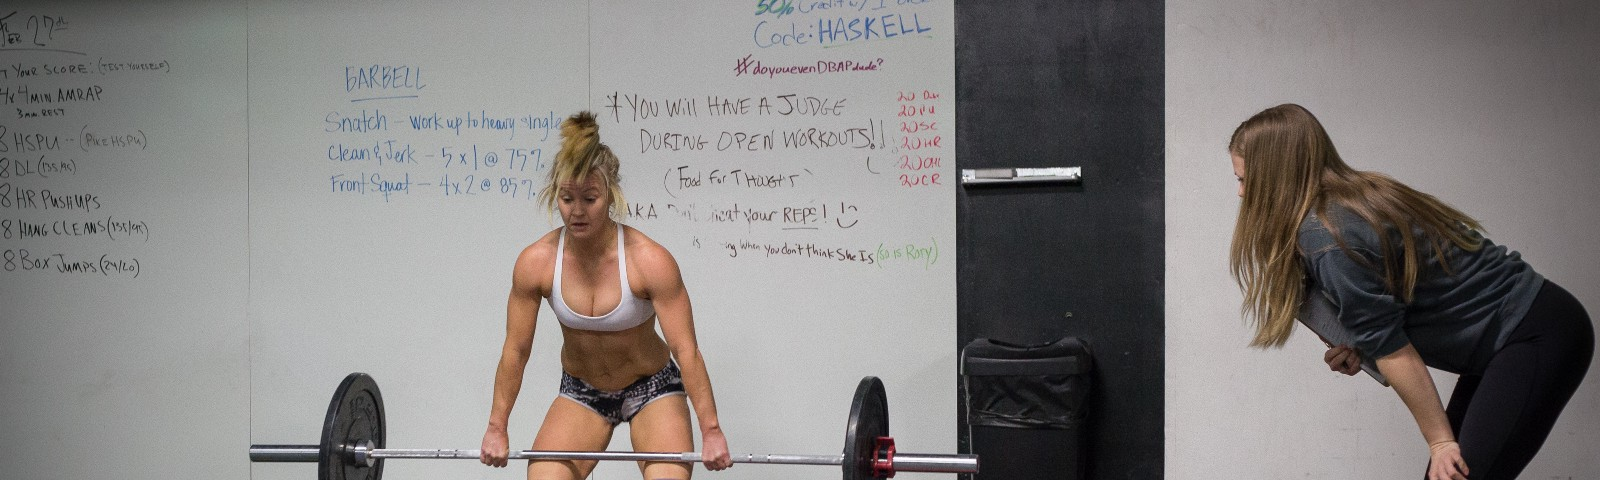 CrossFit Anthropology